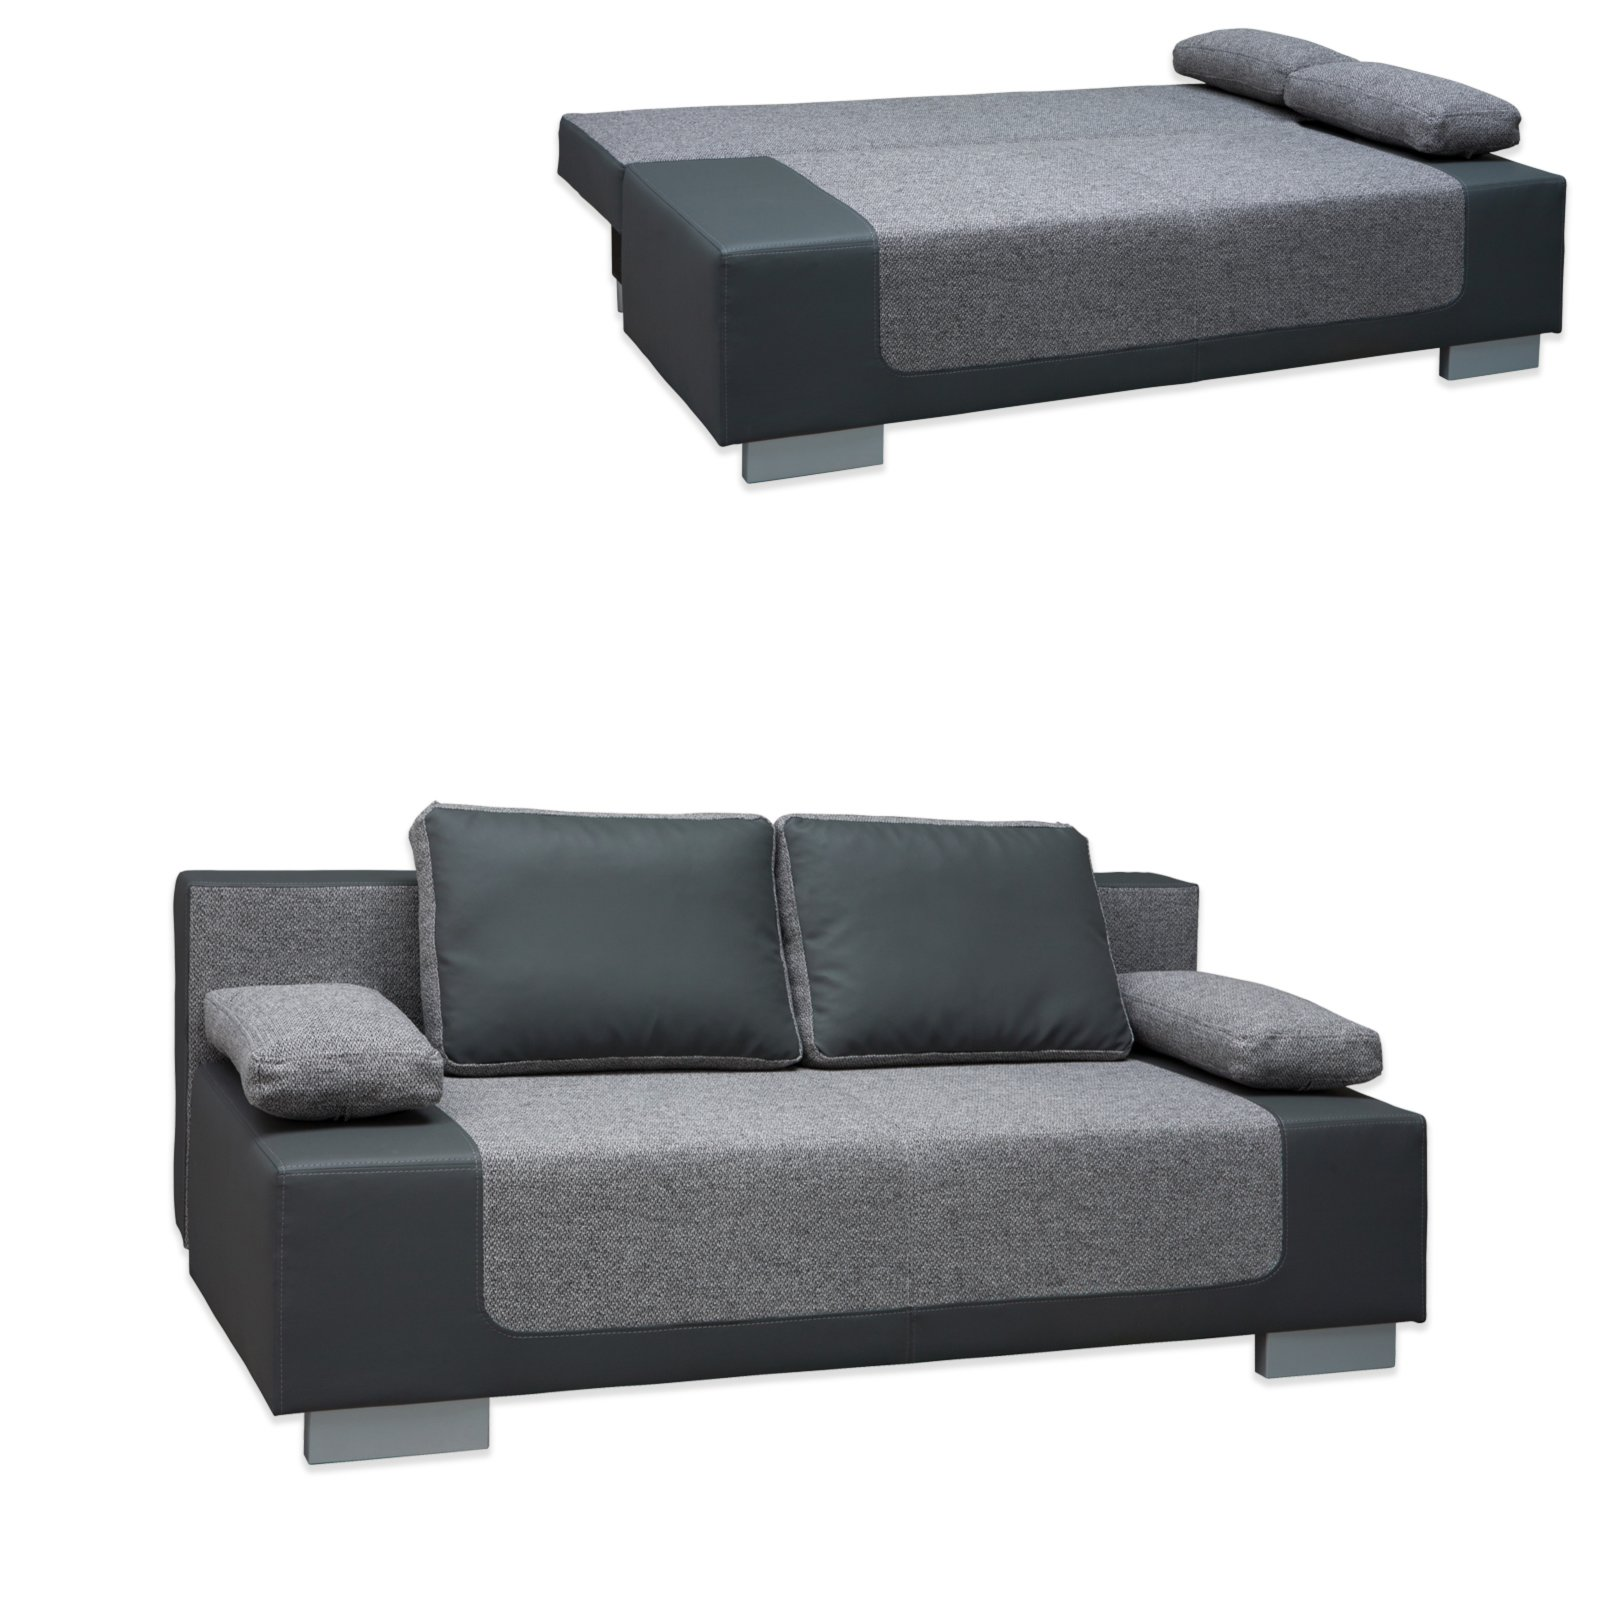 schlafsofa bonell federkern grau mit staukasten kissen ebay. Black Bedroom Furniture Sets. Home Design Ideas